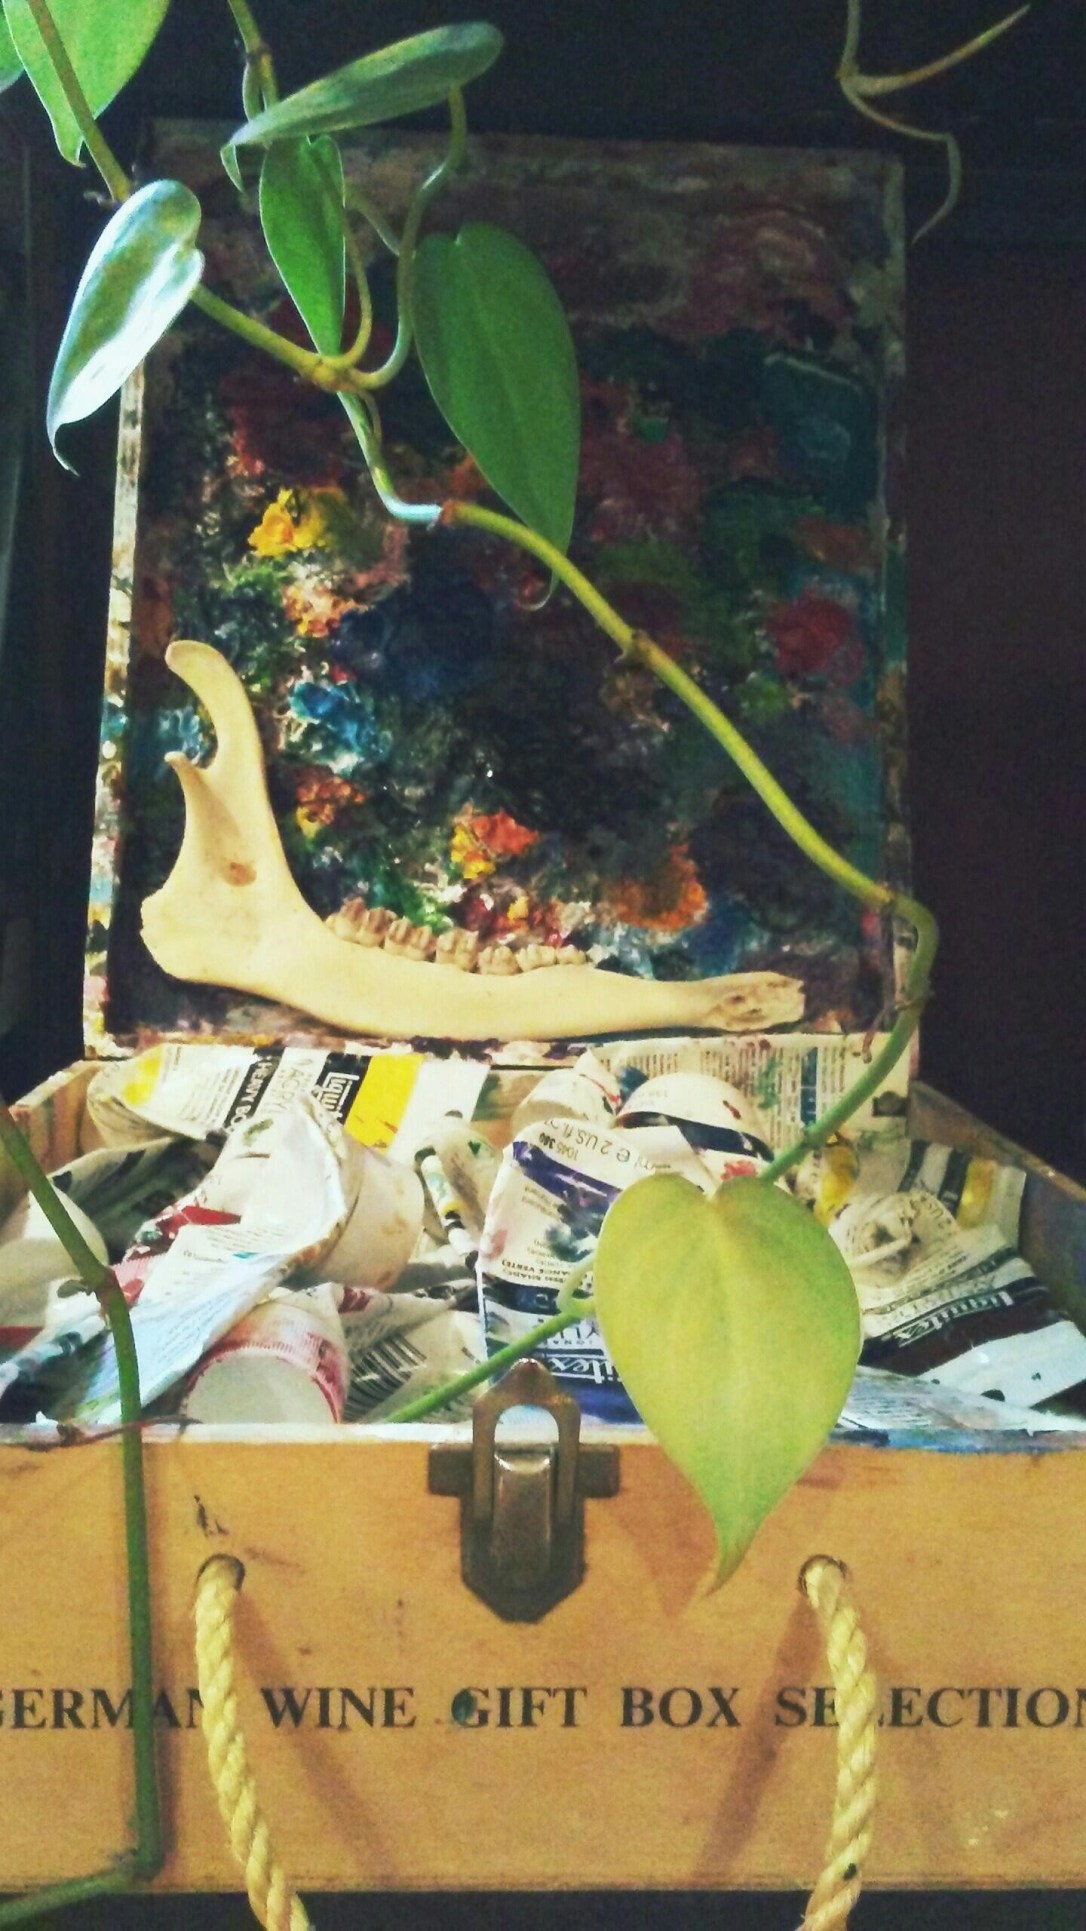 Deer jawbone resting on the lid of an artist's paint box with tubes of acrylic paints.